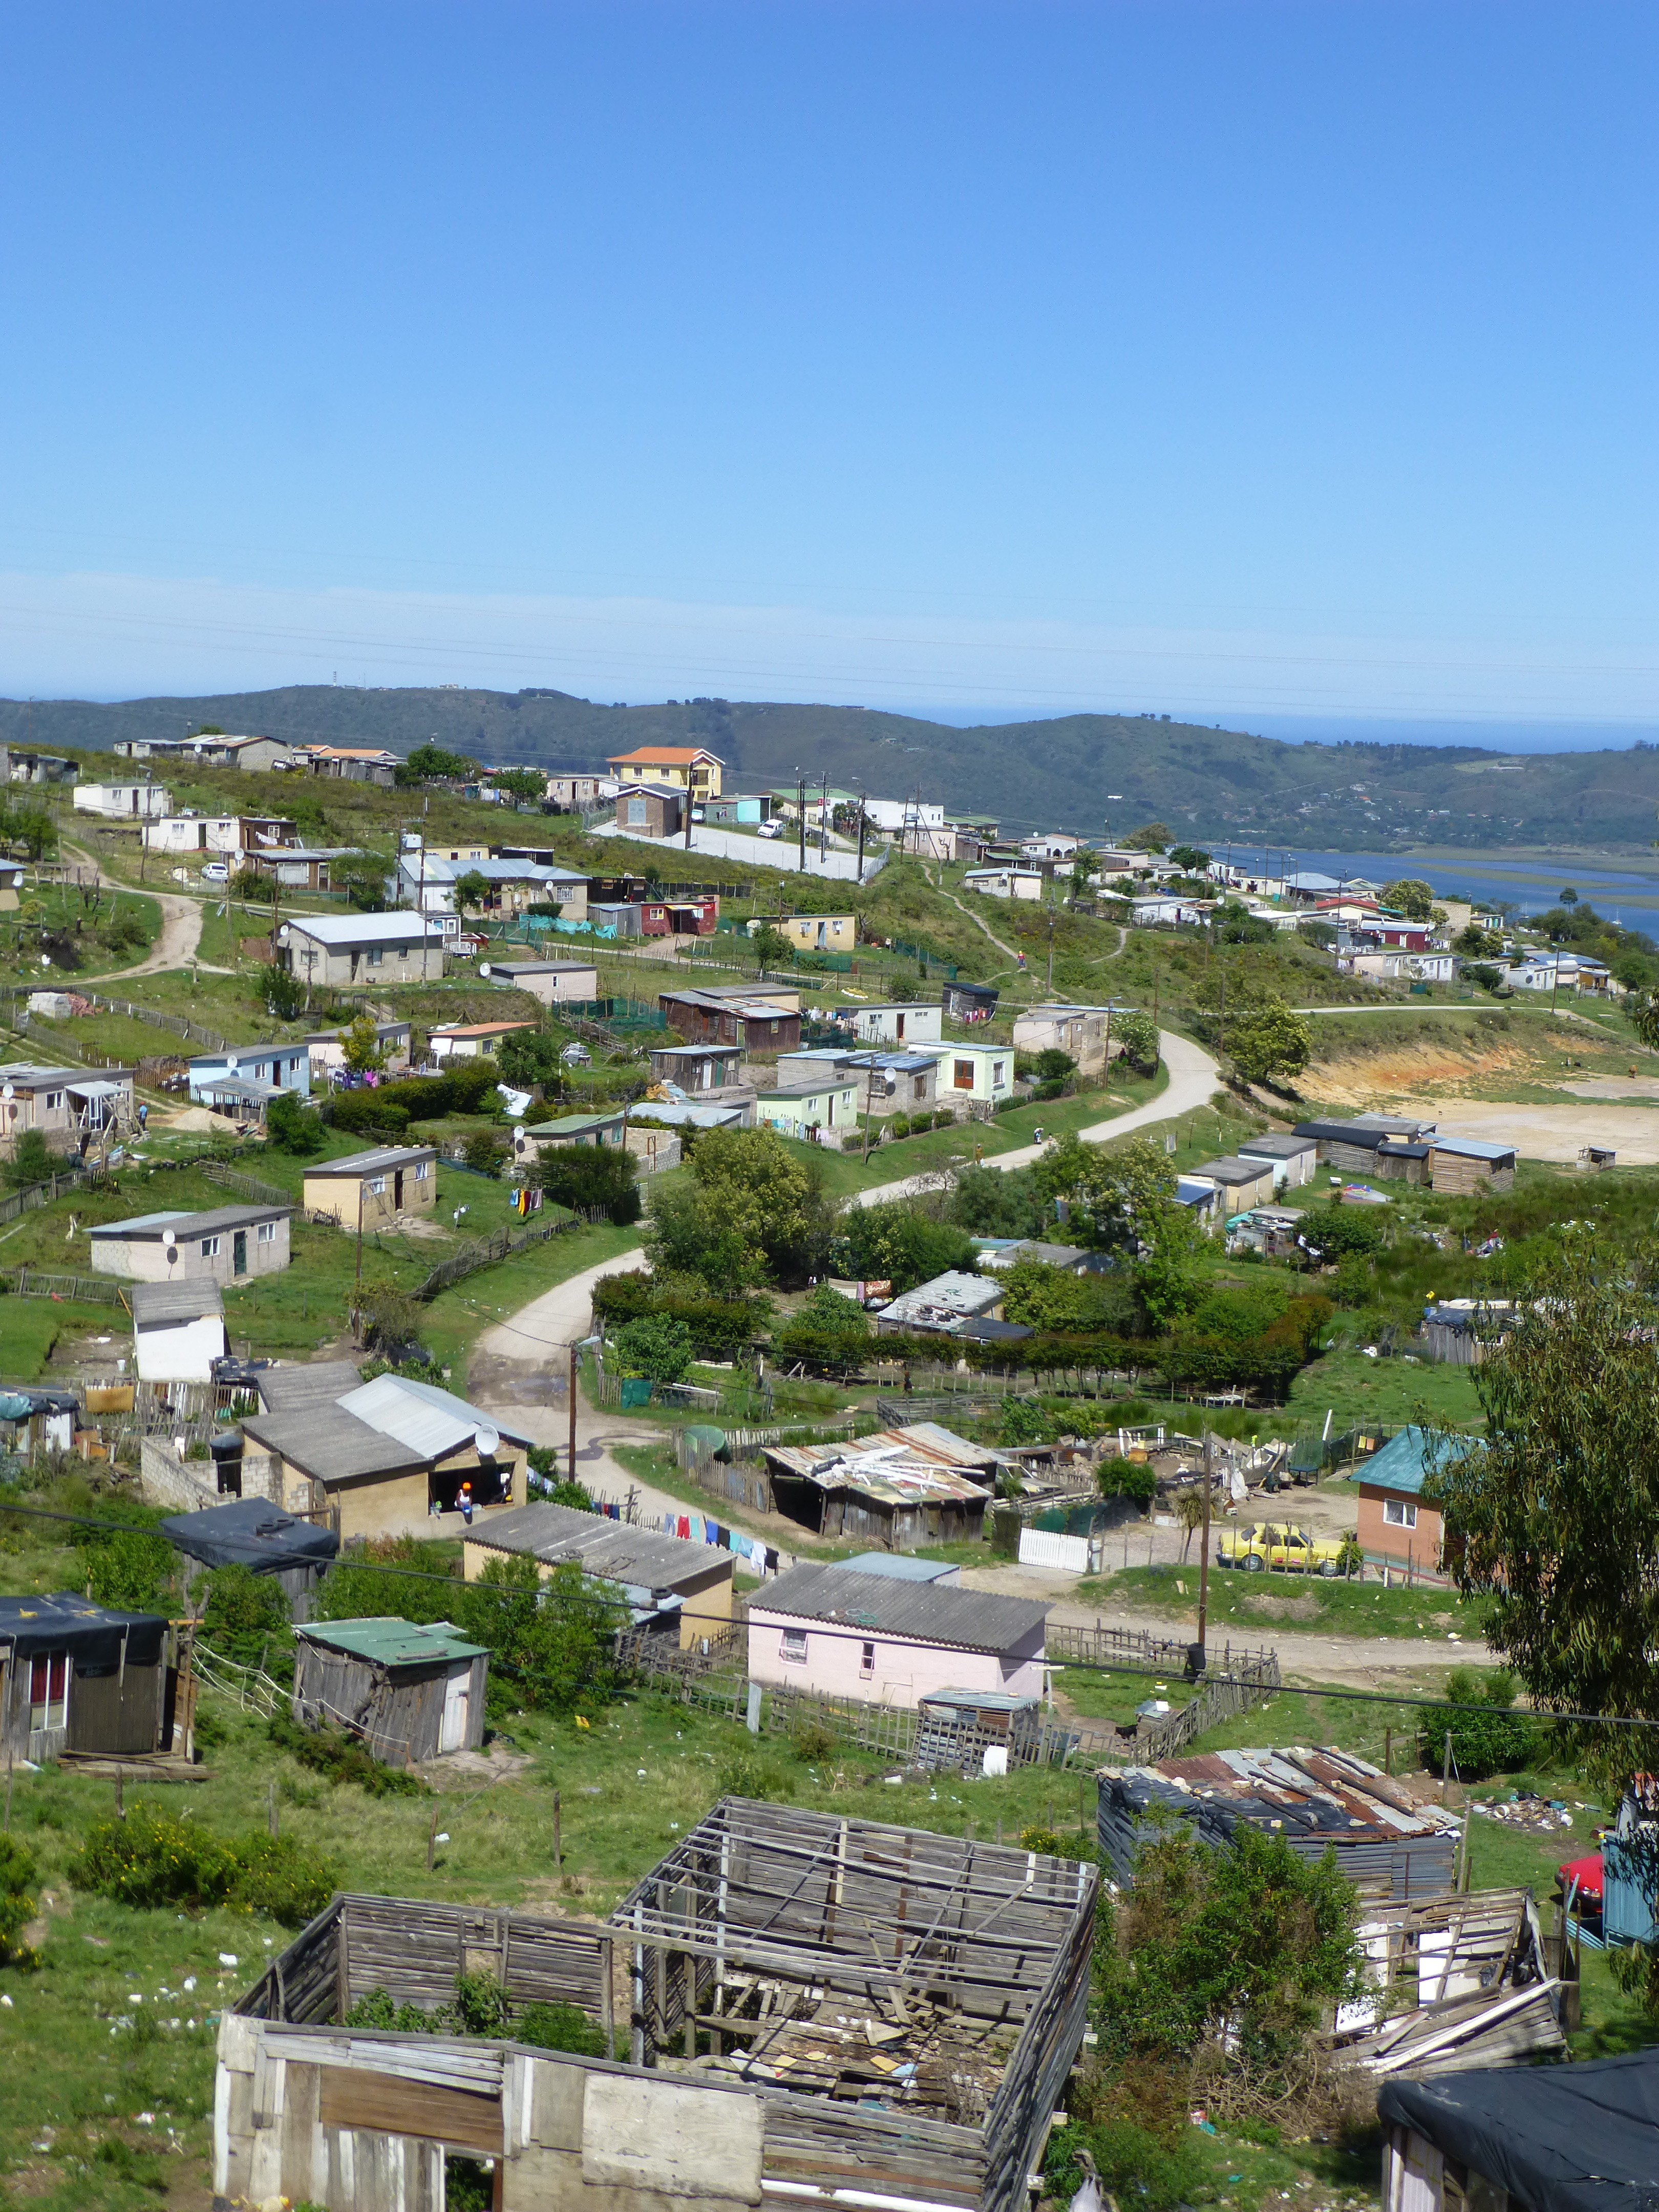 Hoe Geld Verdienen Blog Township Toer In Knysna Zuid Afrika Safe And Healthy Travel